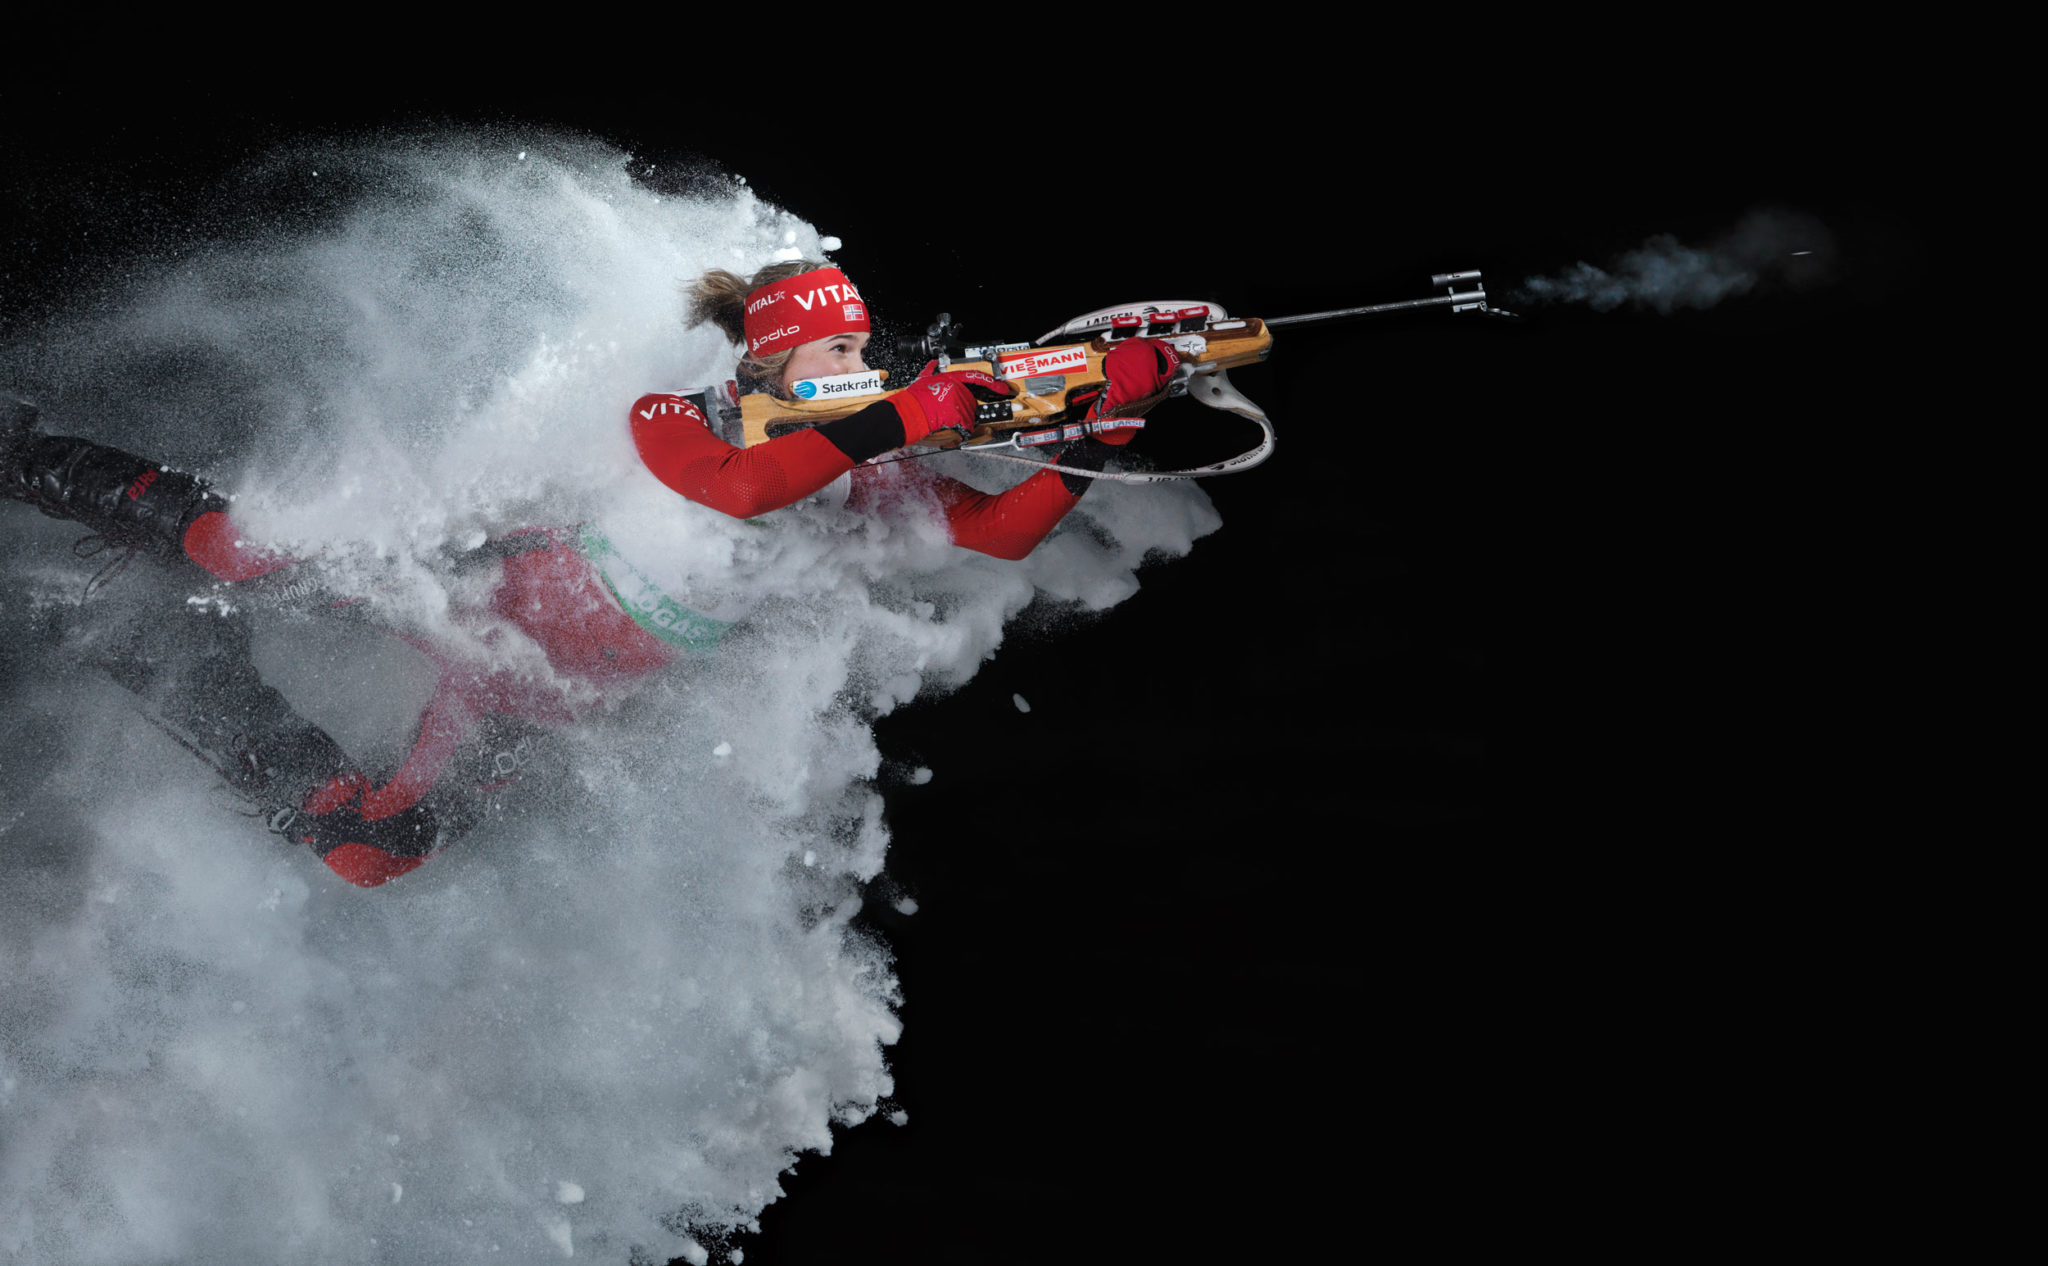 Thomas Morel - Biathlon